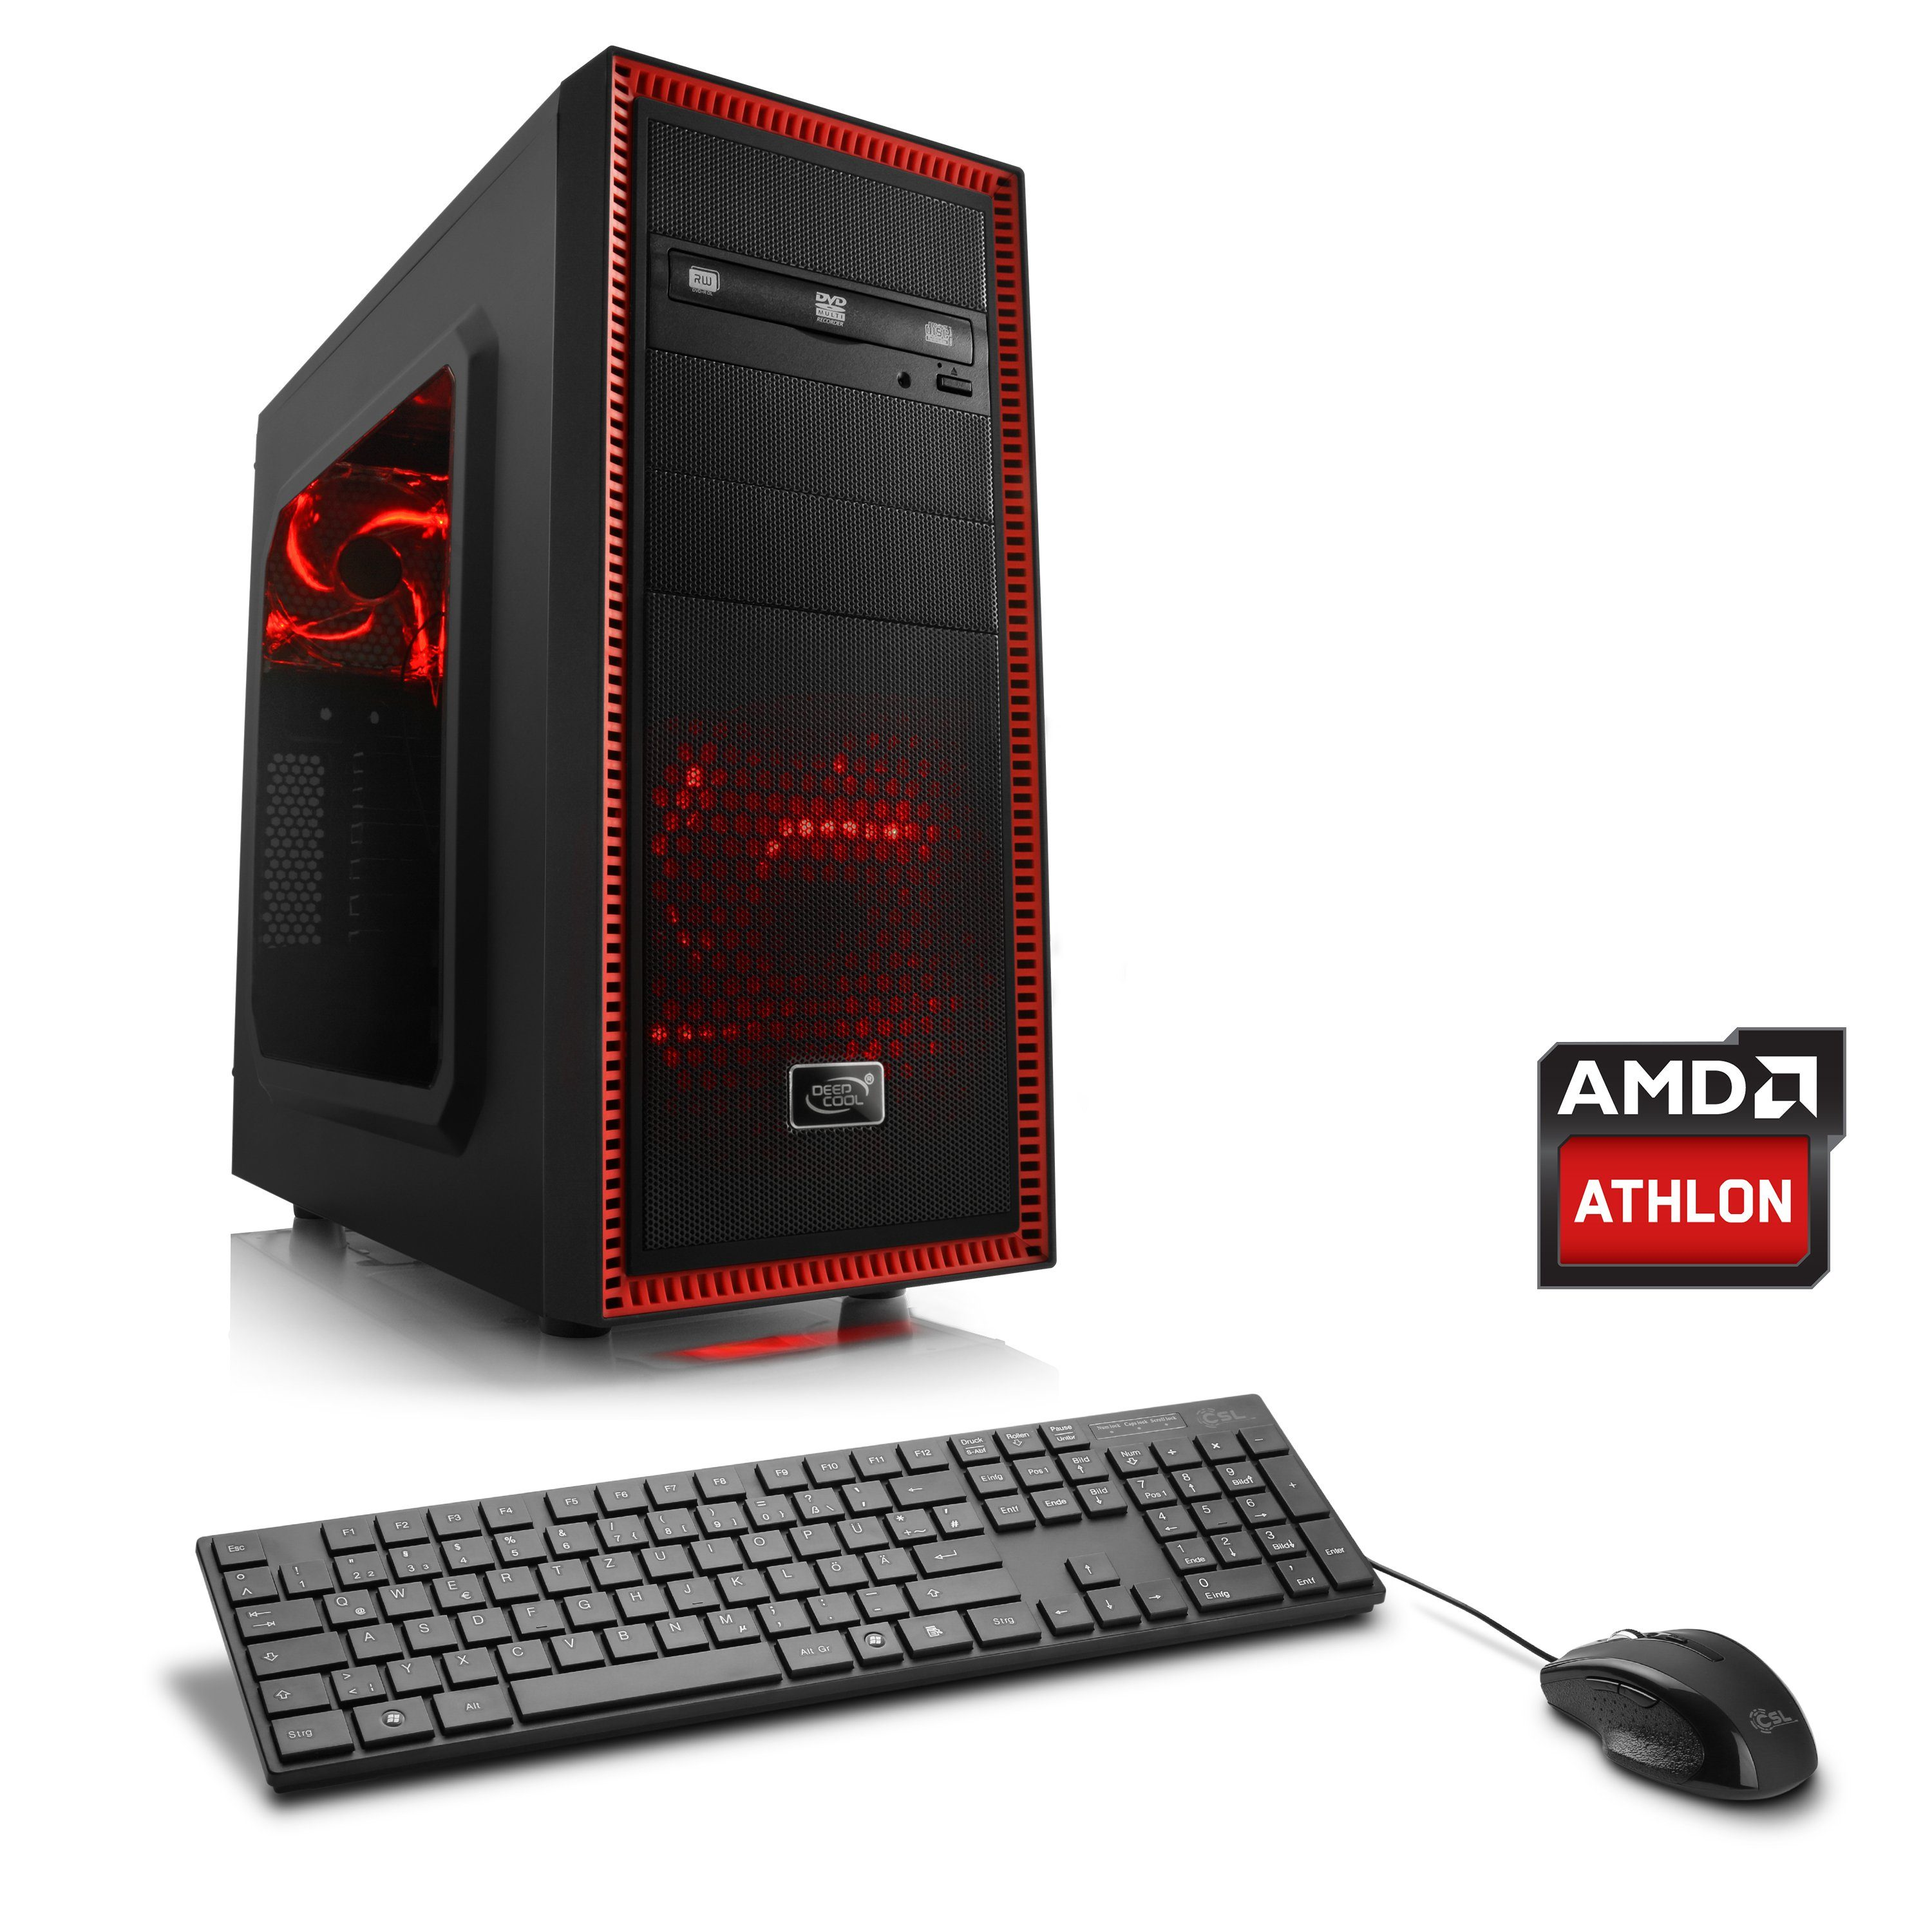 CSL Gaming PC | AMD Athlon X4 880K | AMD RX 470 | 8 GB RAM »Sprint T4815 Windows 10 Home«